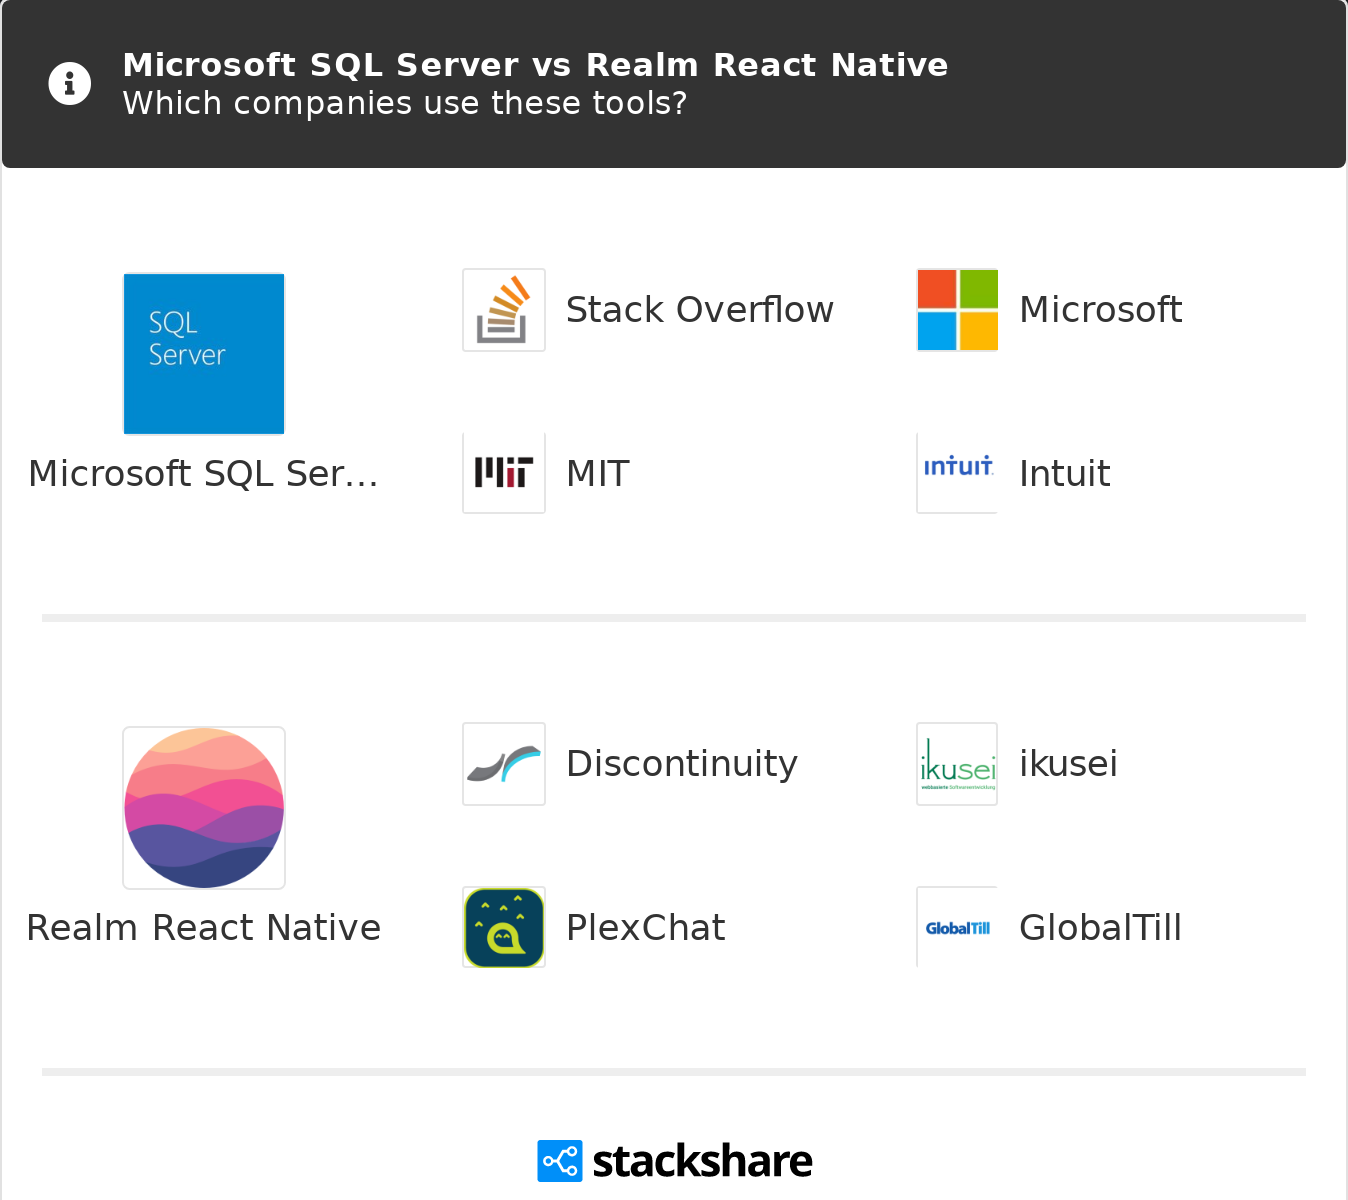 Microsoft SQL Server vs Realm React Native | What are the differences?